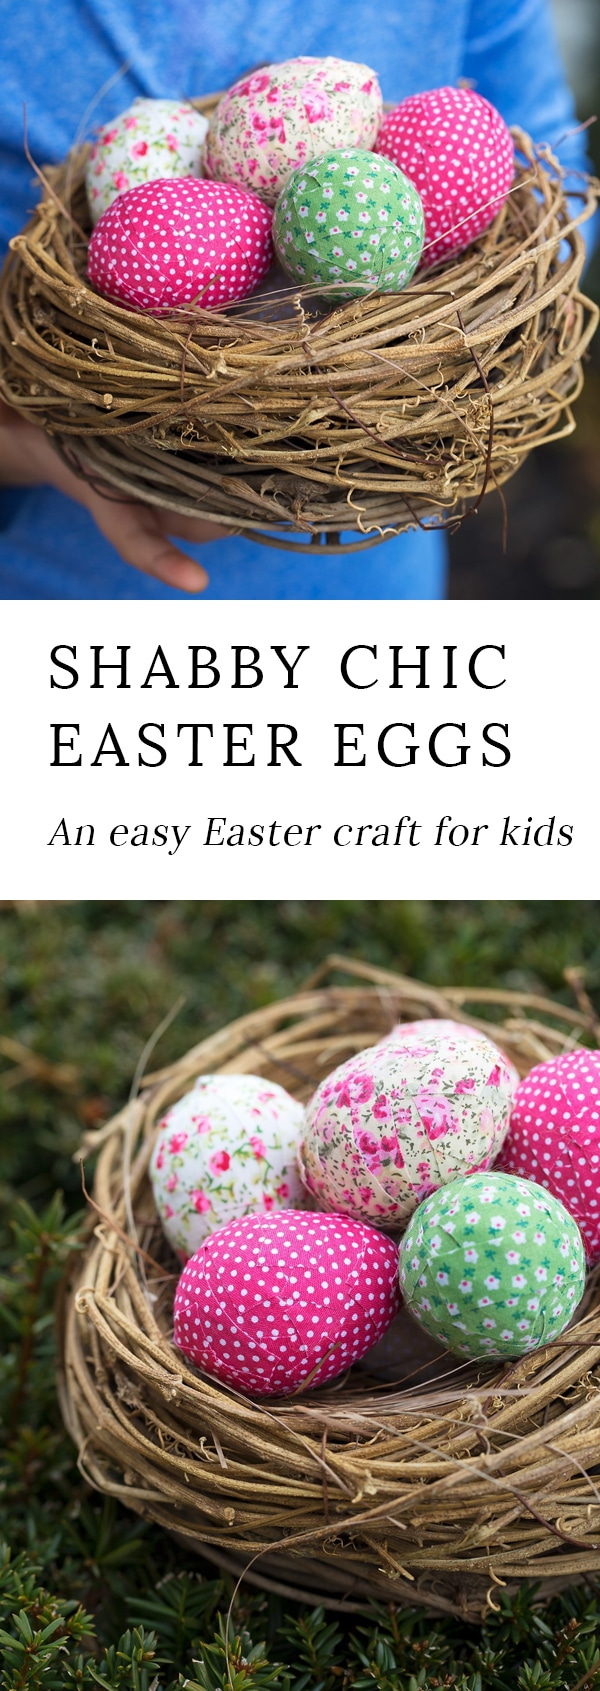 Shabby chic Easter eggslook beautiful nestled into a bowl or hanging from a primitive Easter egg tree. An easy Easter craft for kids!